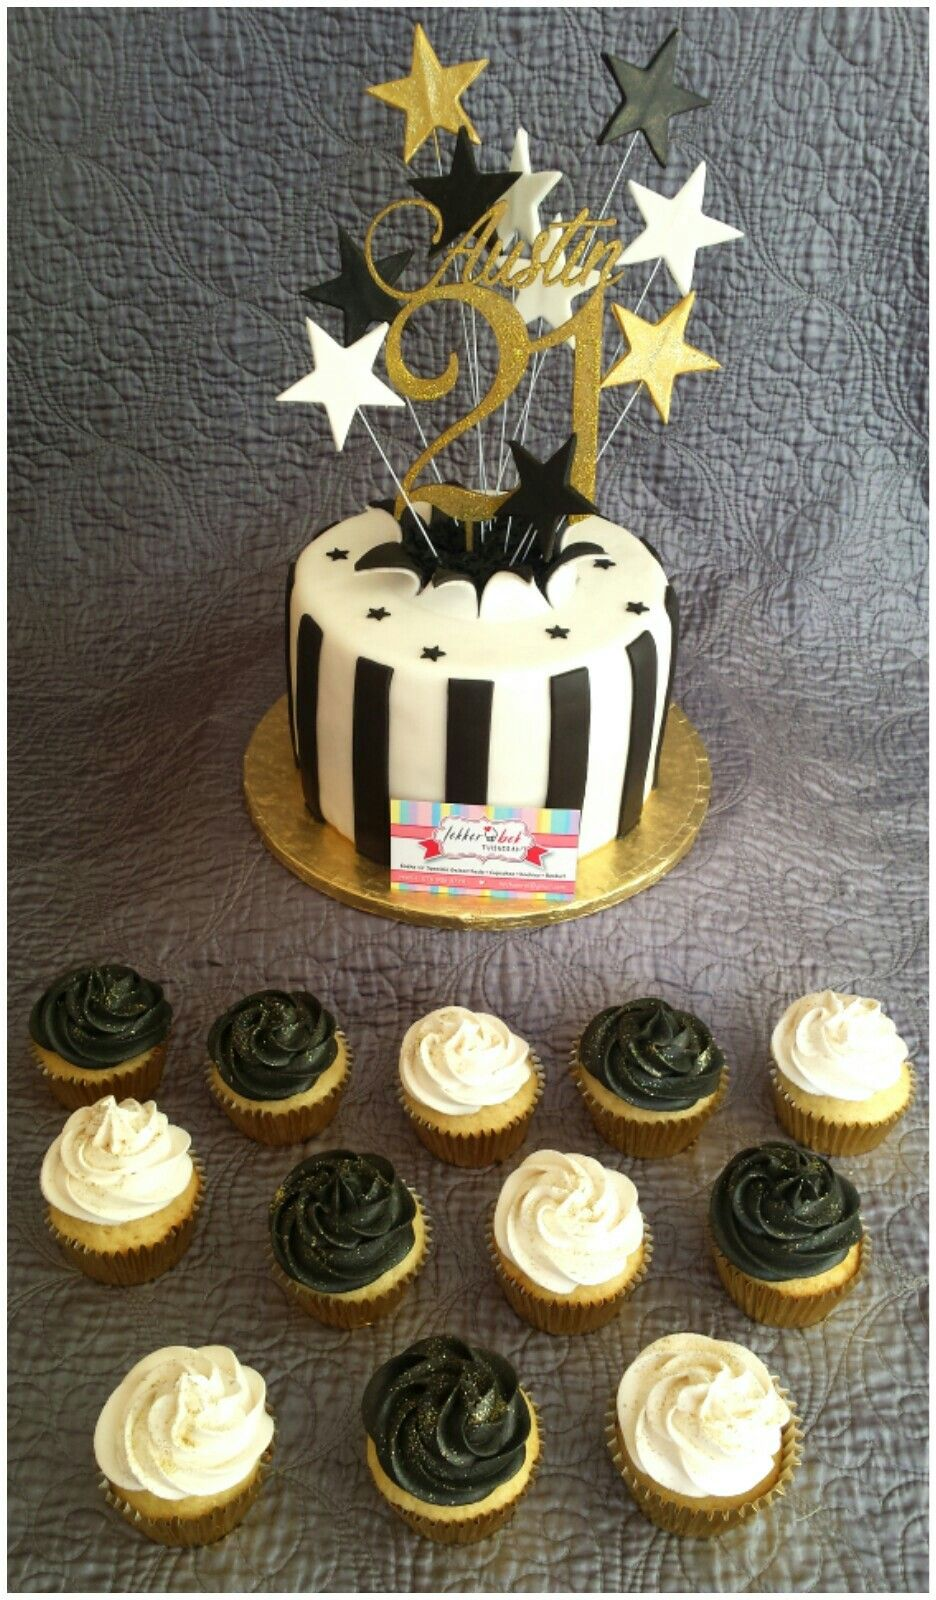 31st Birthday Cake With Black And White Cupcakes